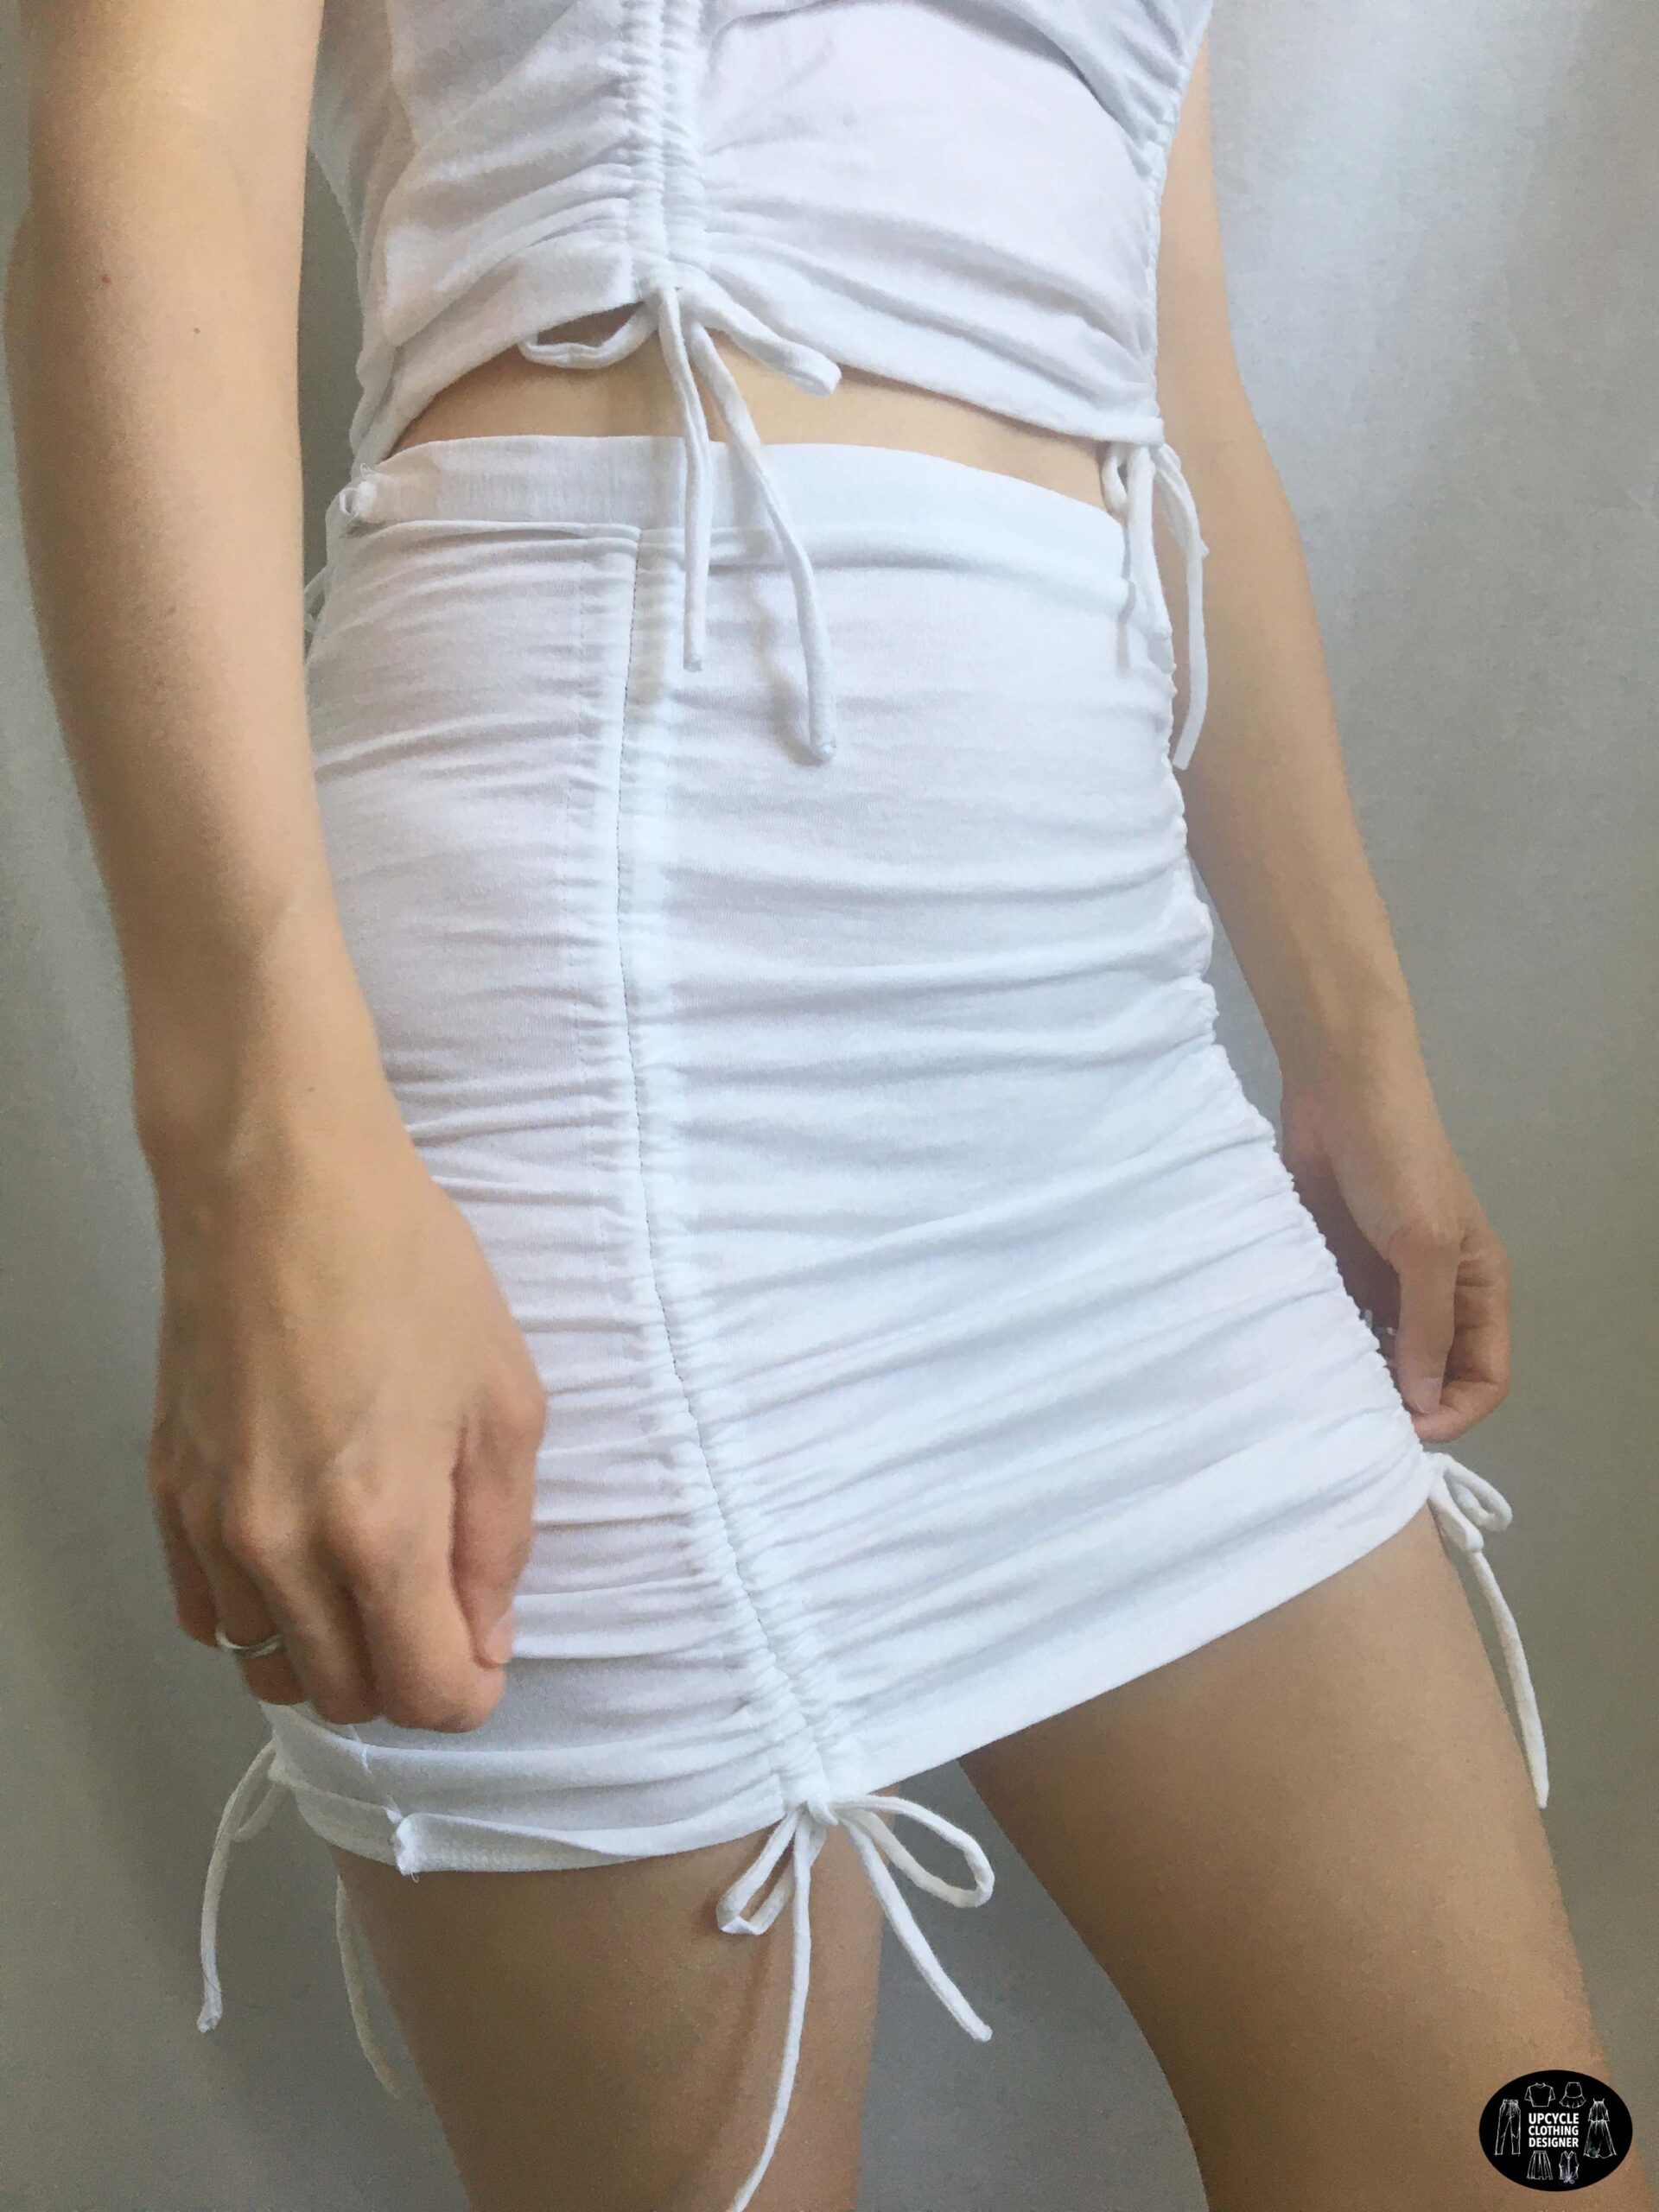 Sideview of the side ruched mini skirt from a t-shirt